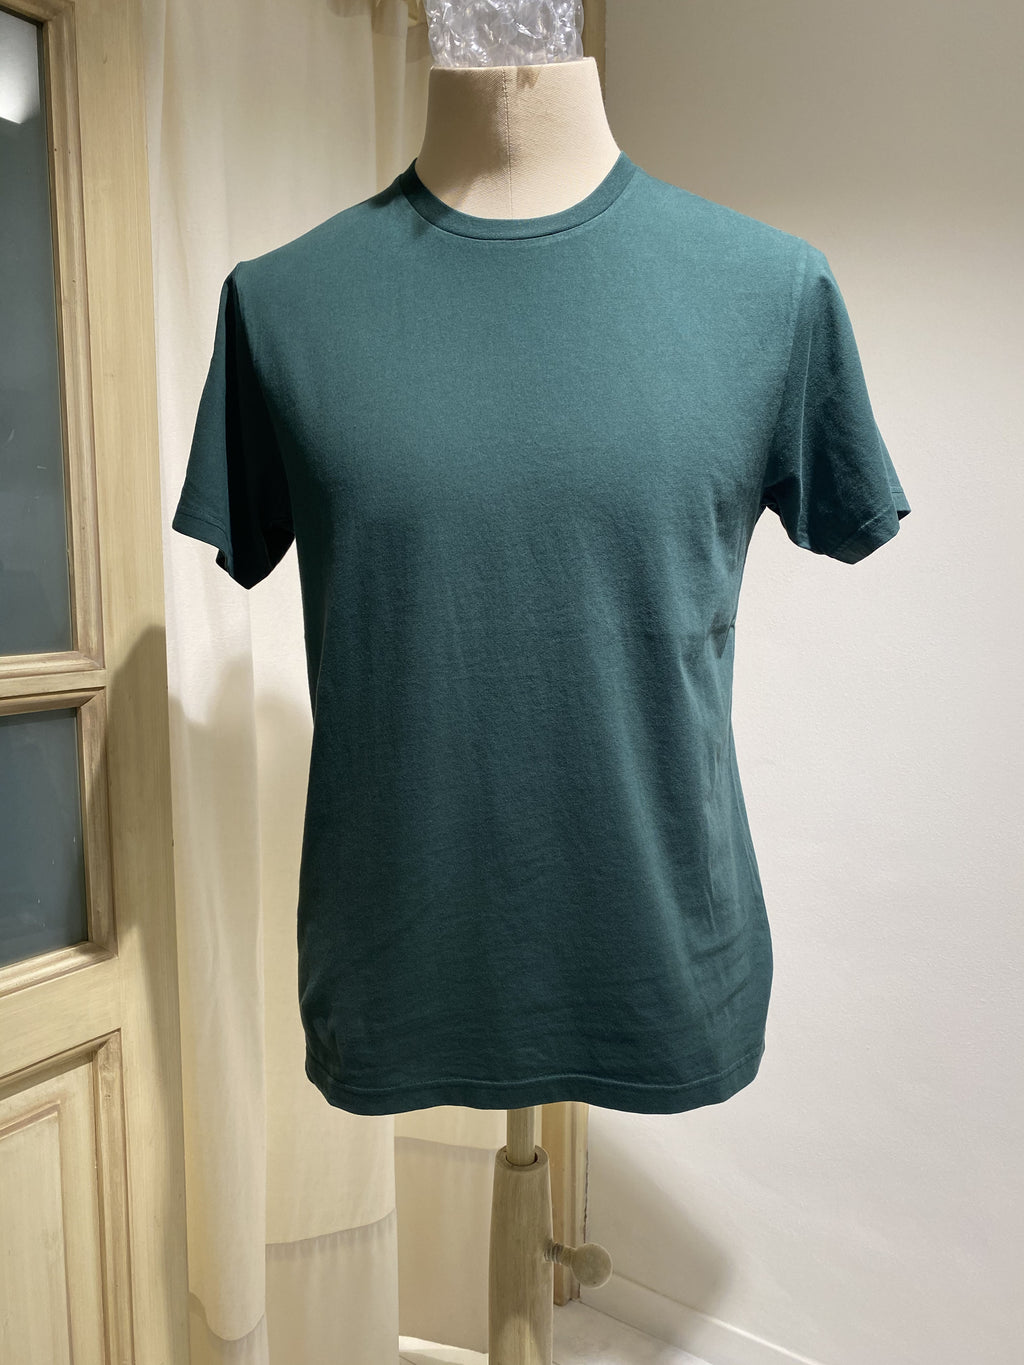 M T-SHIRT COLORFUL STANDARD - EMERALD GREEN